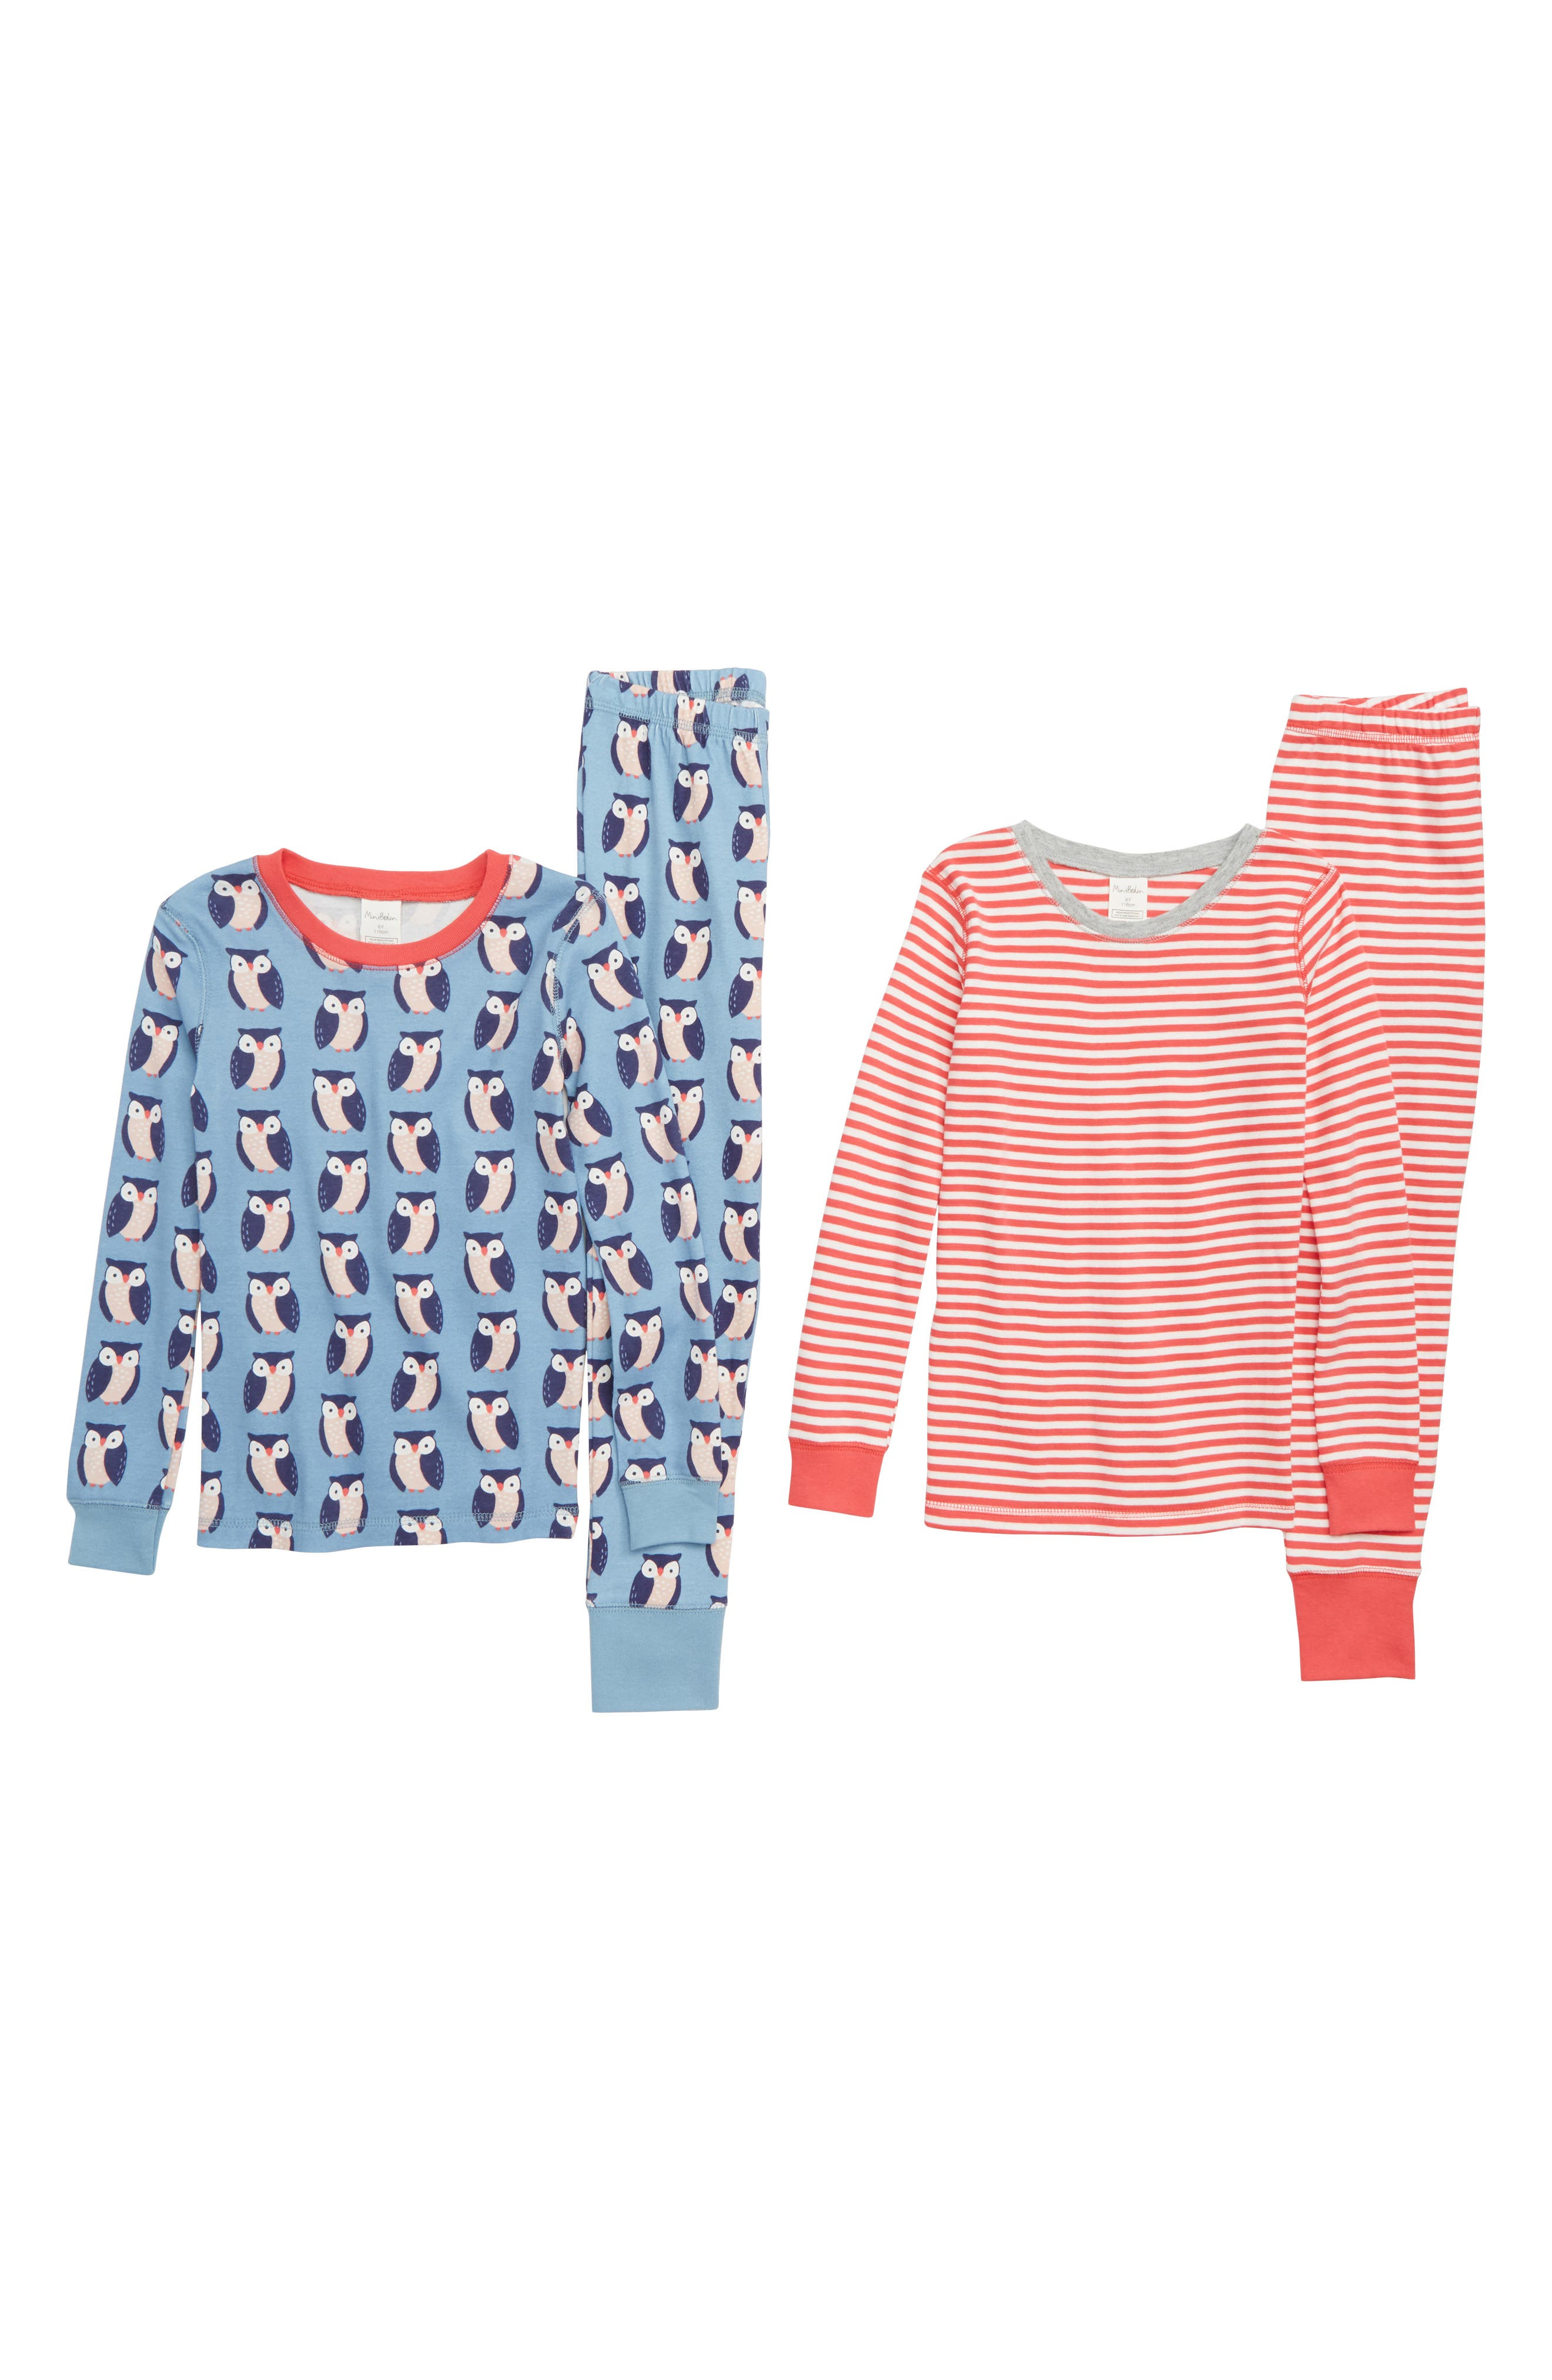 MINI BODEN 2-Pack Fitted Two-Piece Pajamas, Main, color, 424